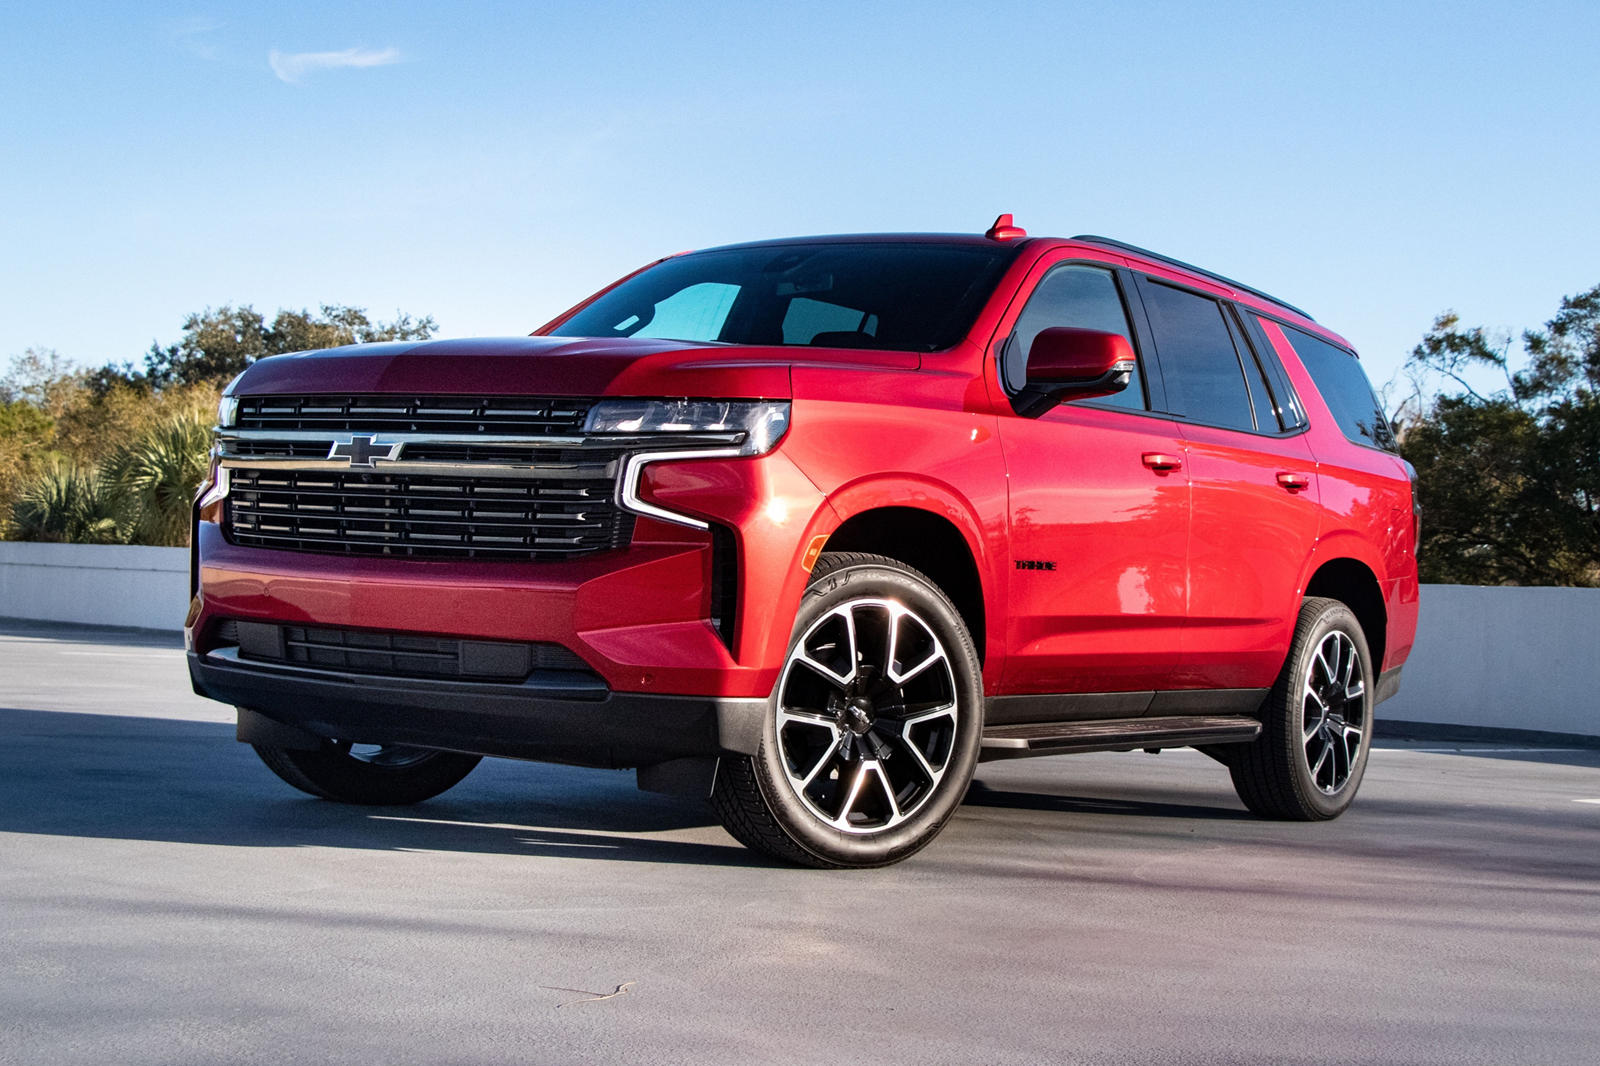 7 best features of the 2021 chevrolet tahoe | carbuzz